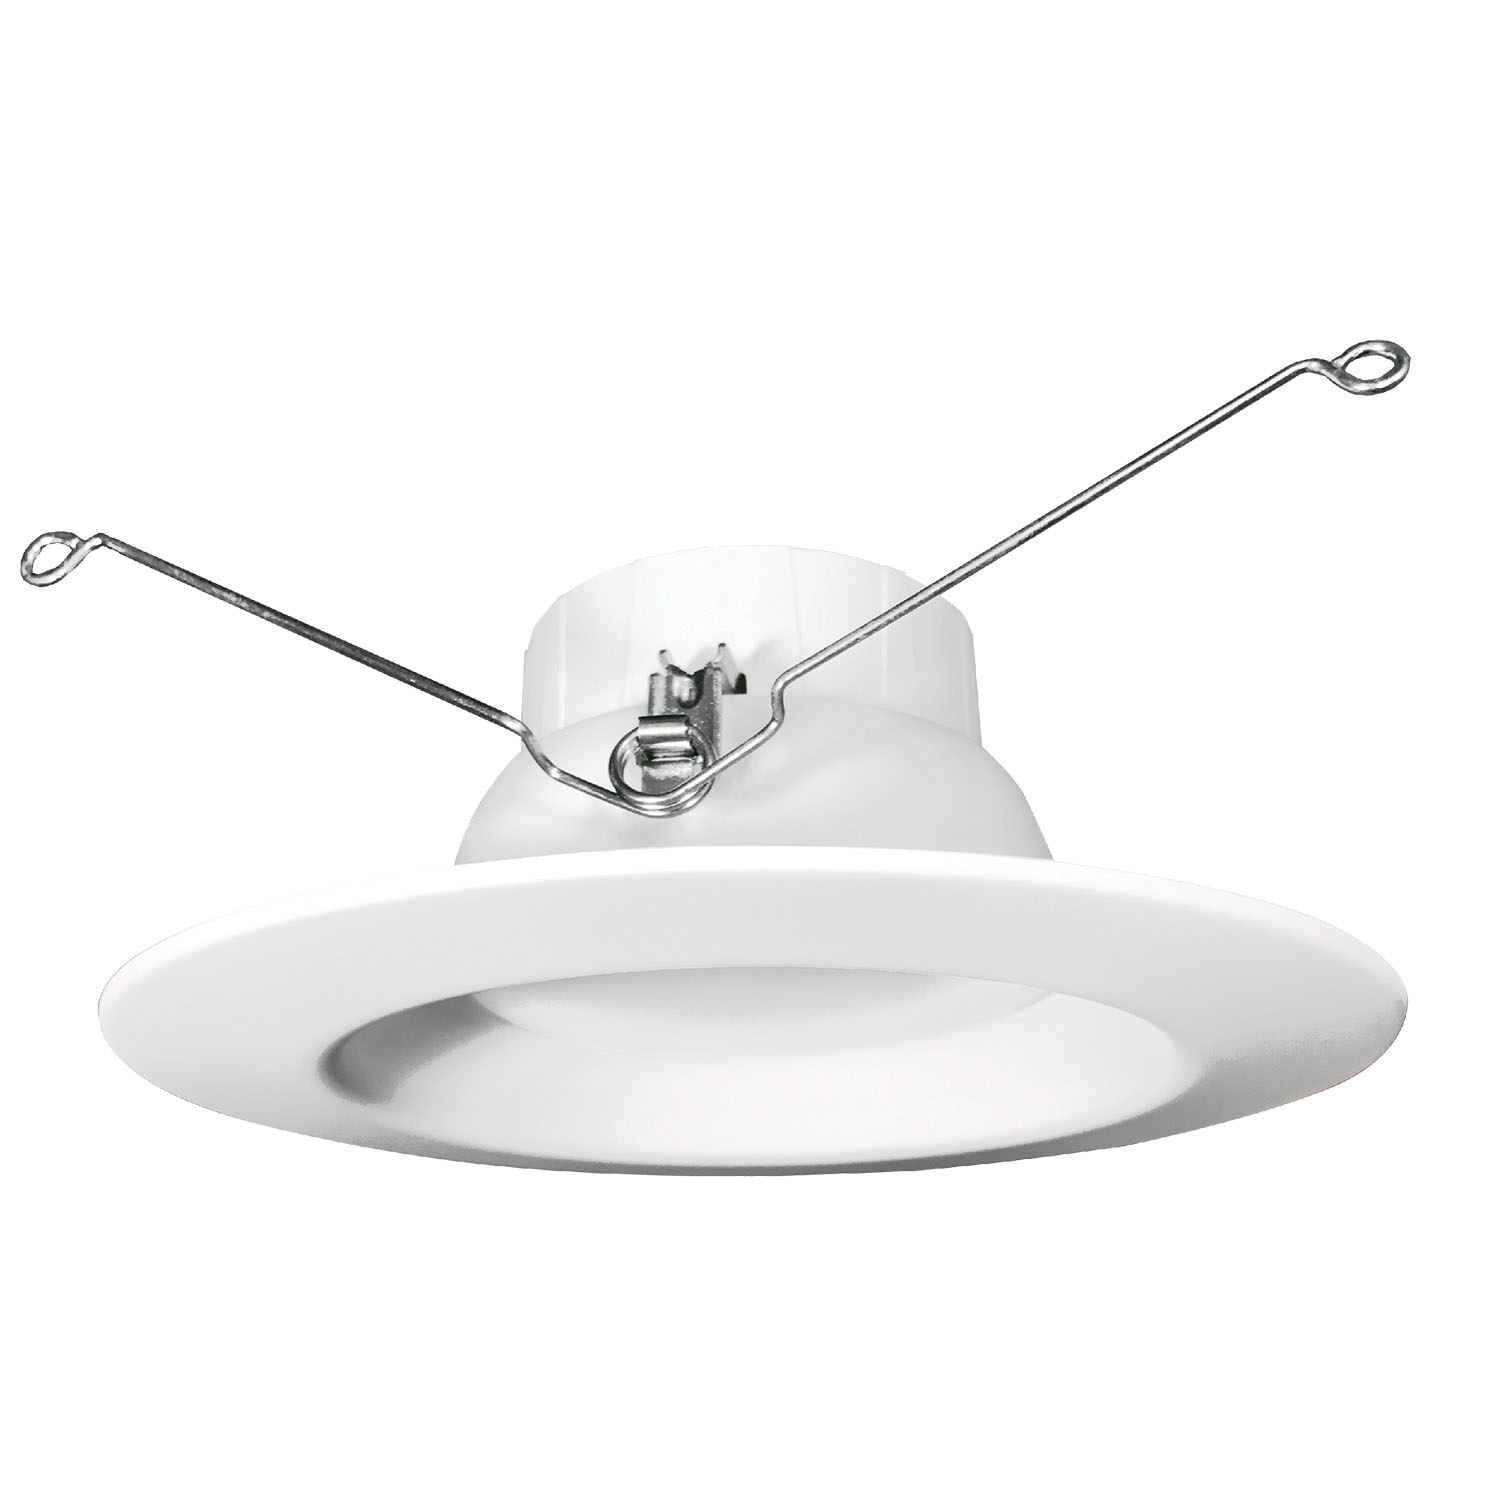 "DL6FR10/930/ECO/LED2 99638 6"" Retrofit Downlight, 10W, 3000K, Dimmable ProLED ECO Series II"